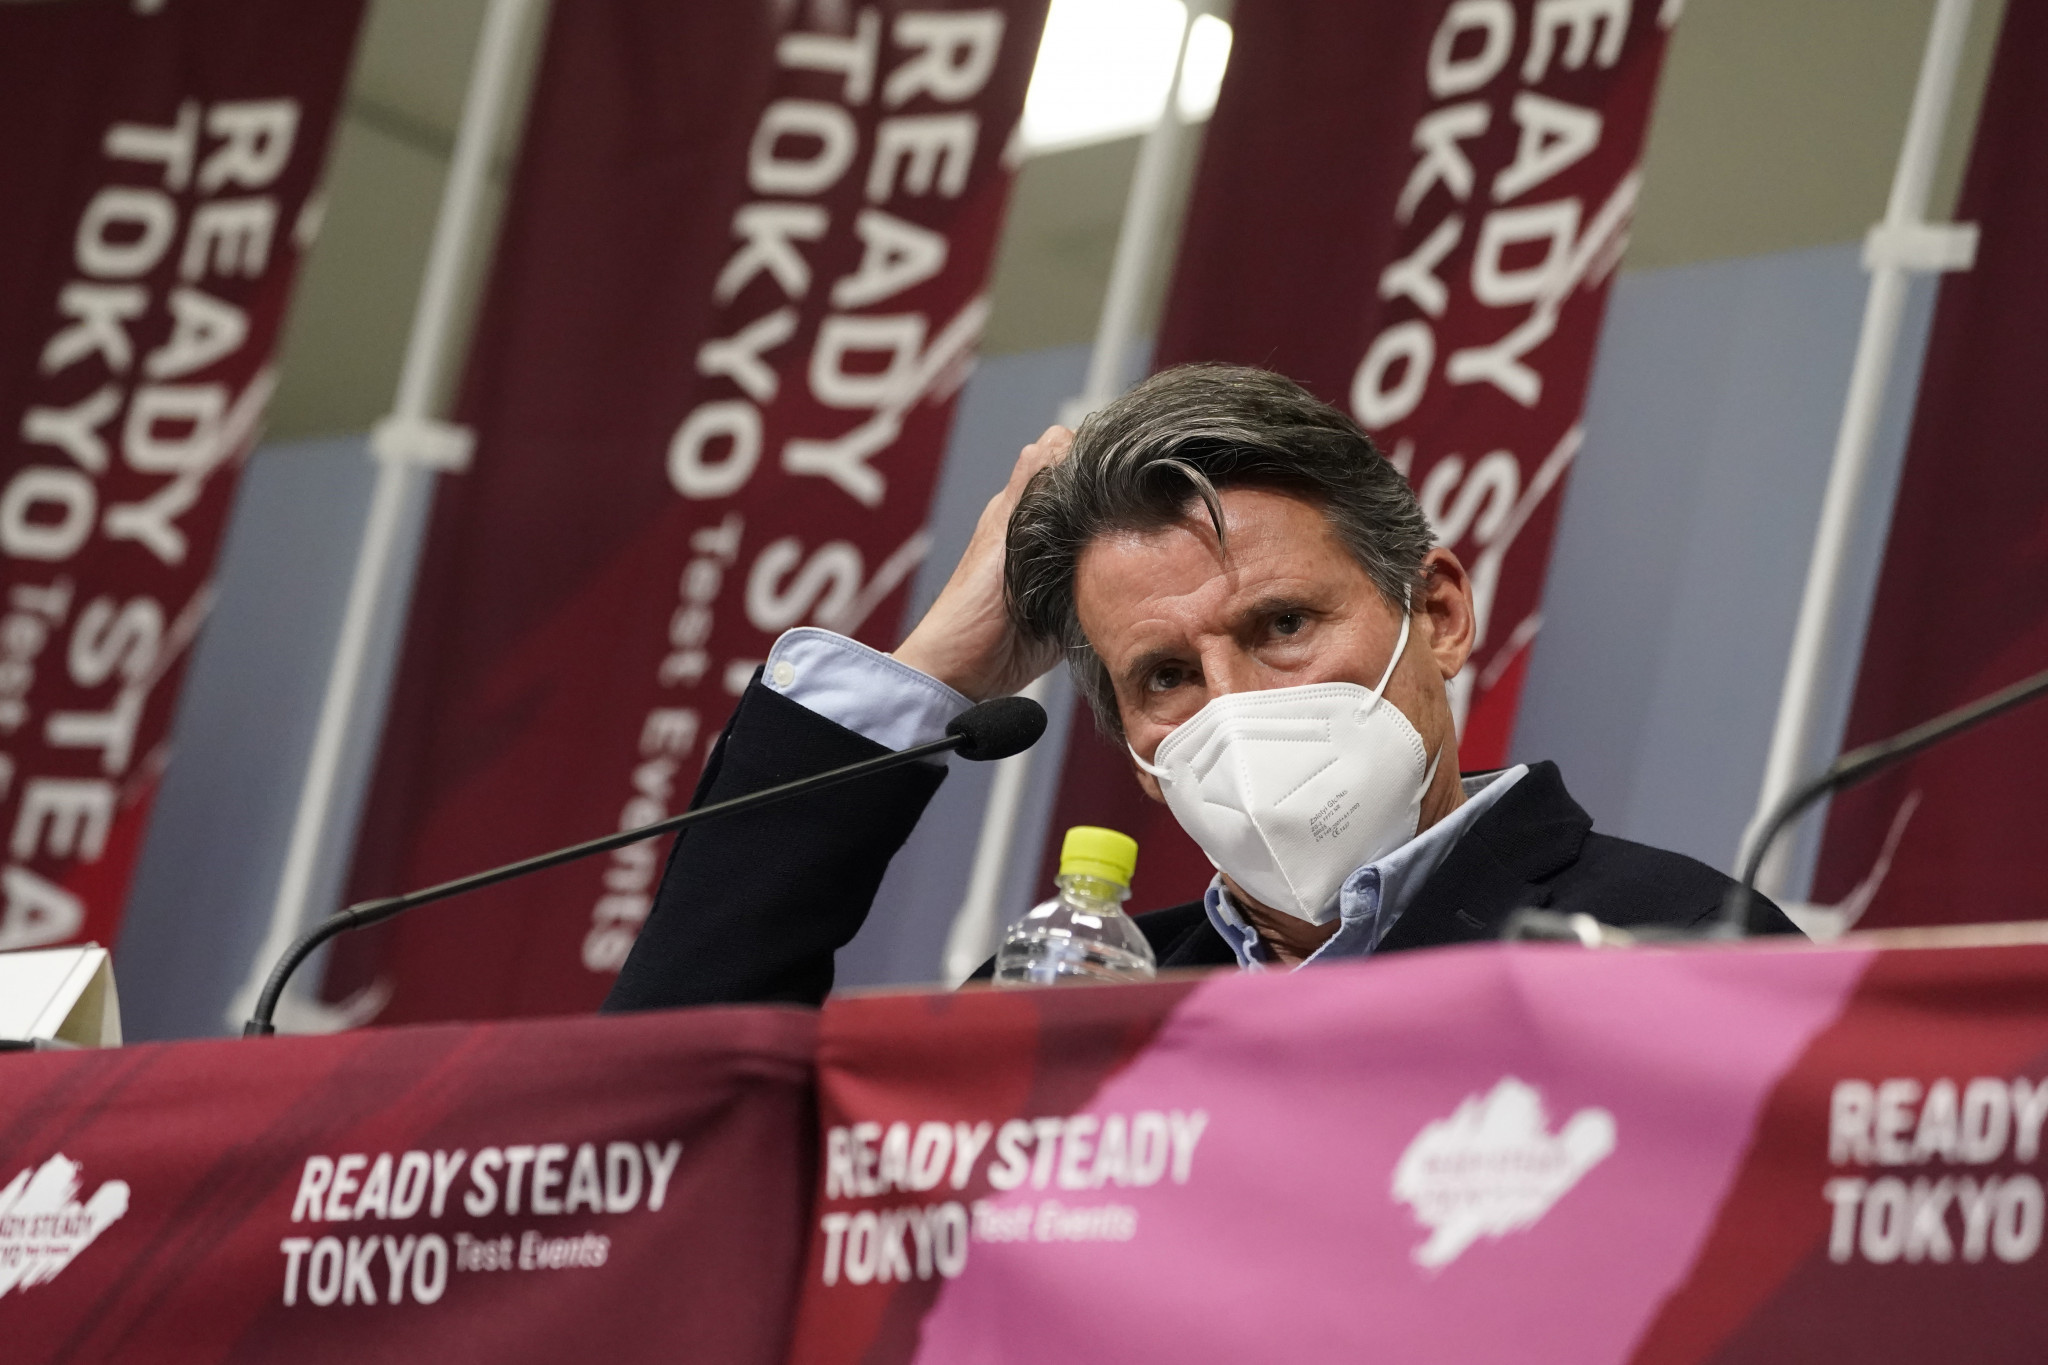 Coe reassured Tokyo 2020 can be held safely following attendance at test events